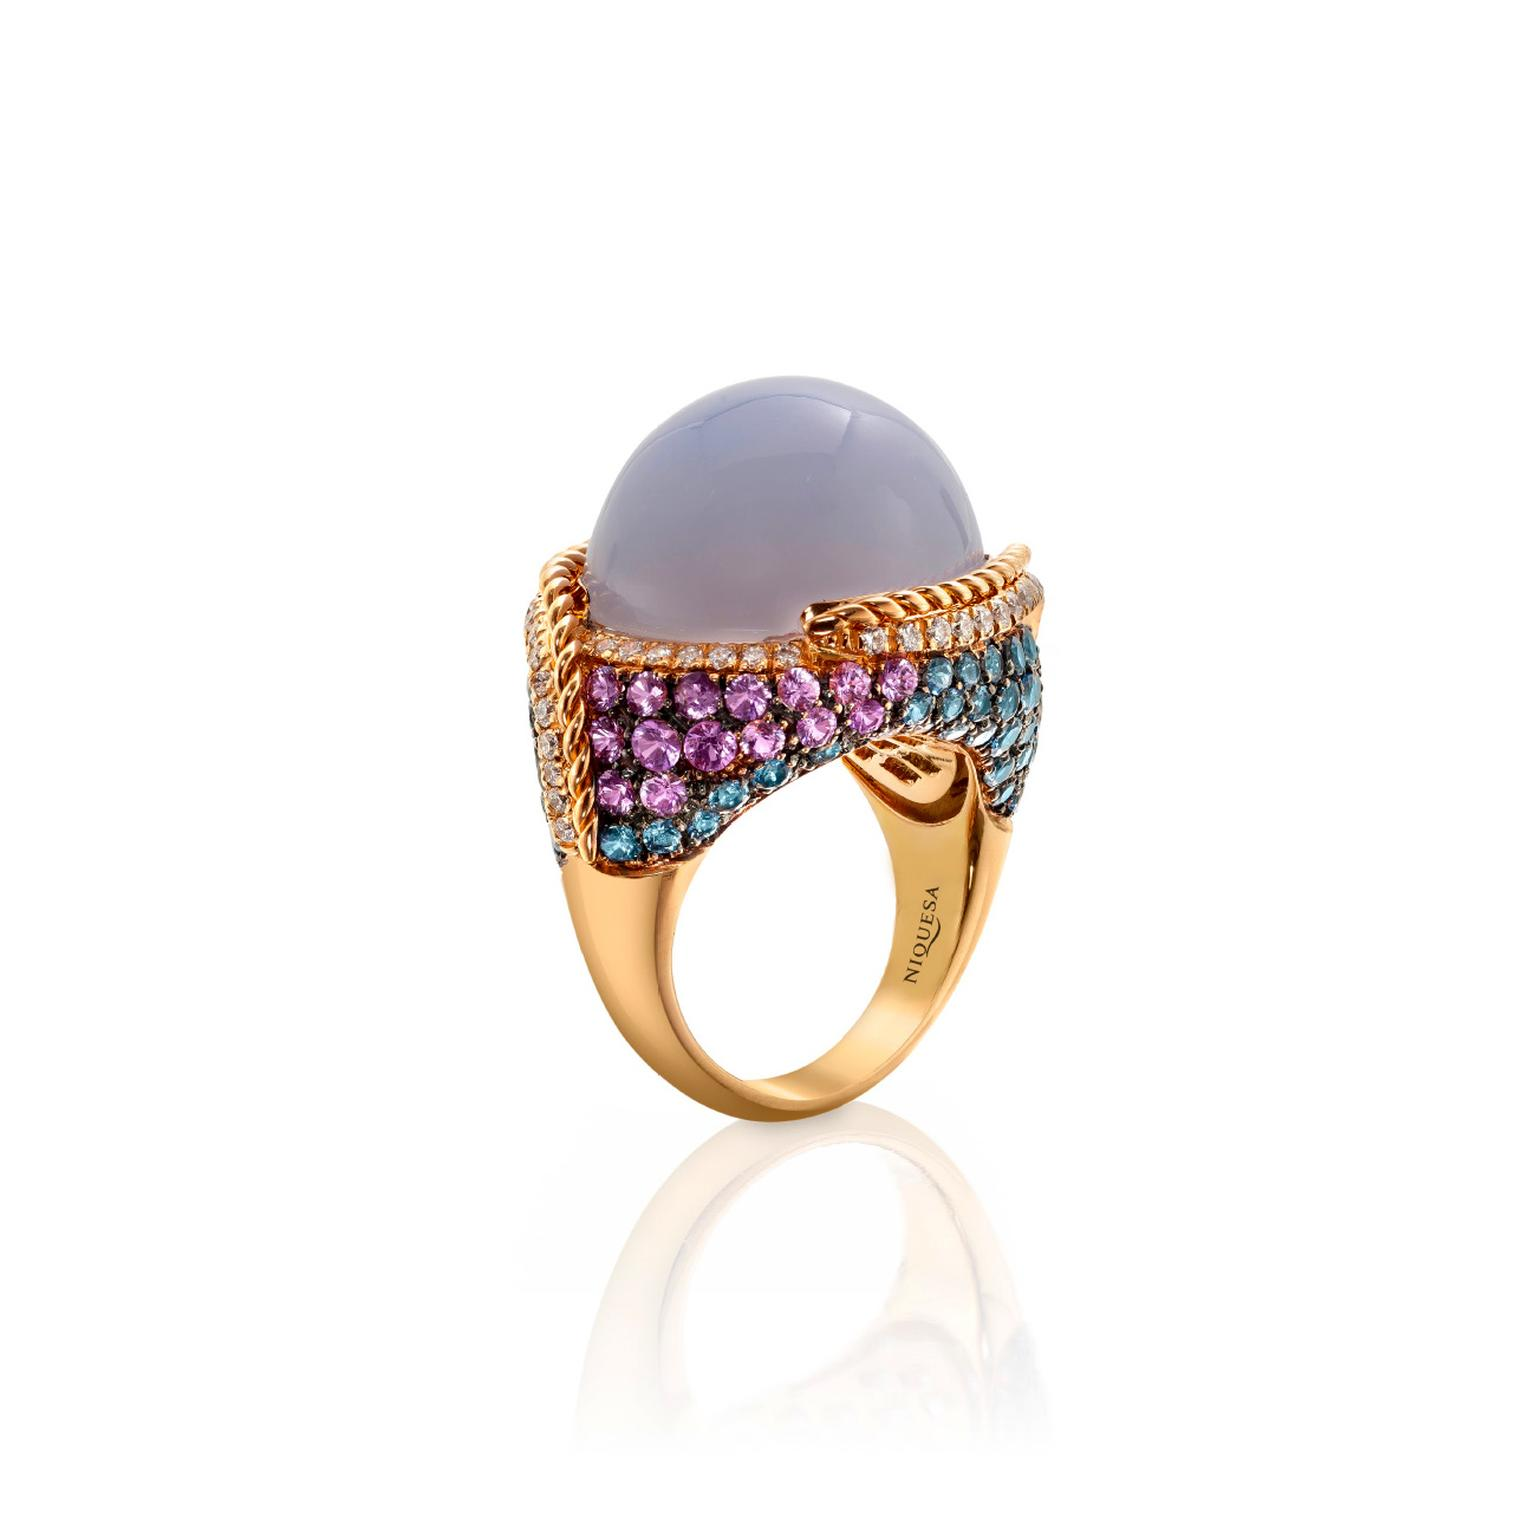 Niquesa Venice Zanni ring